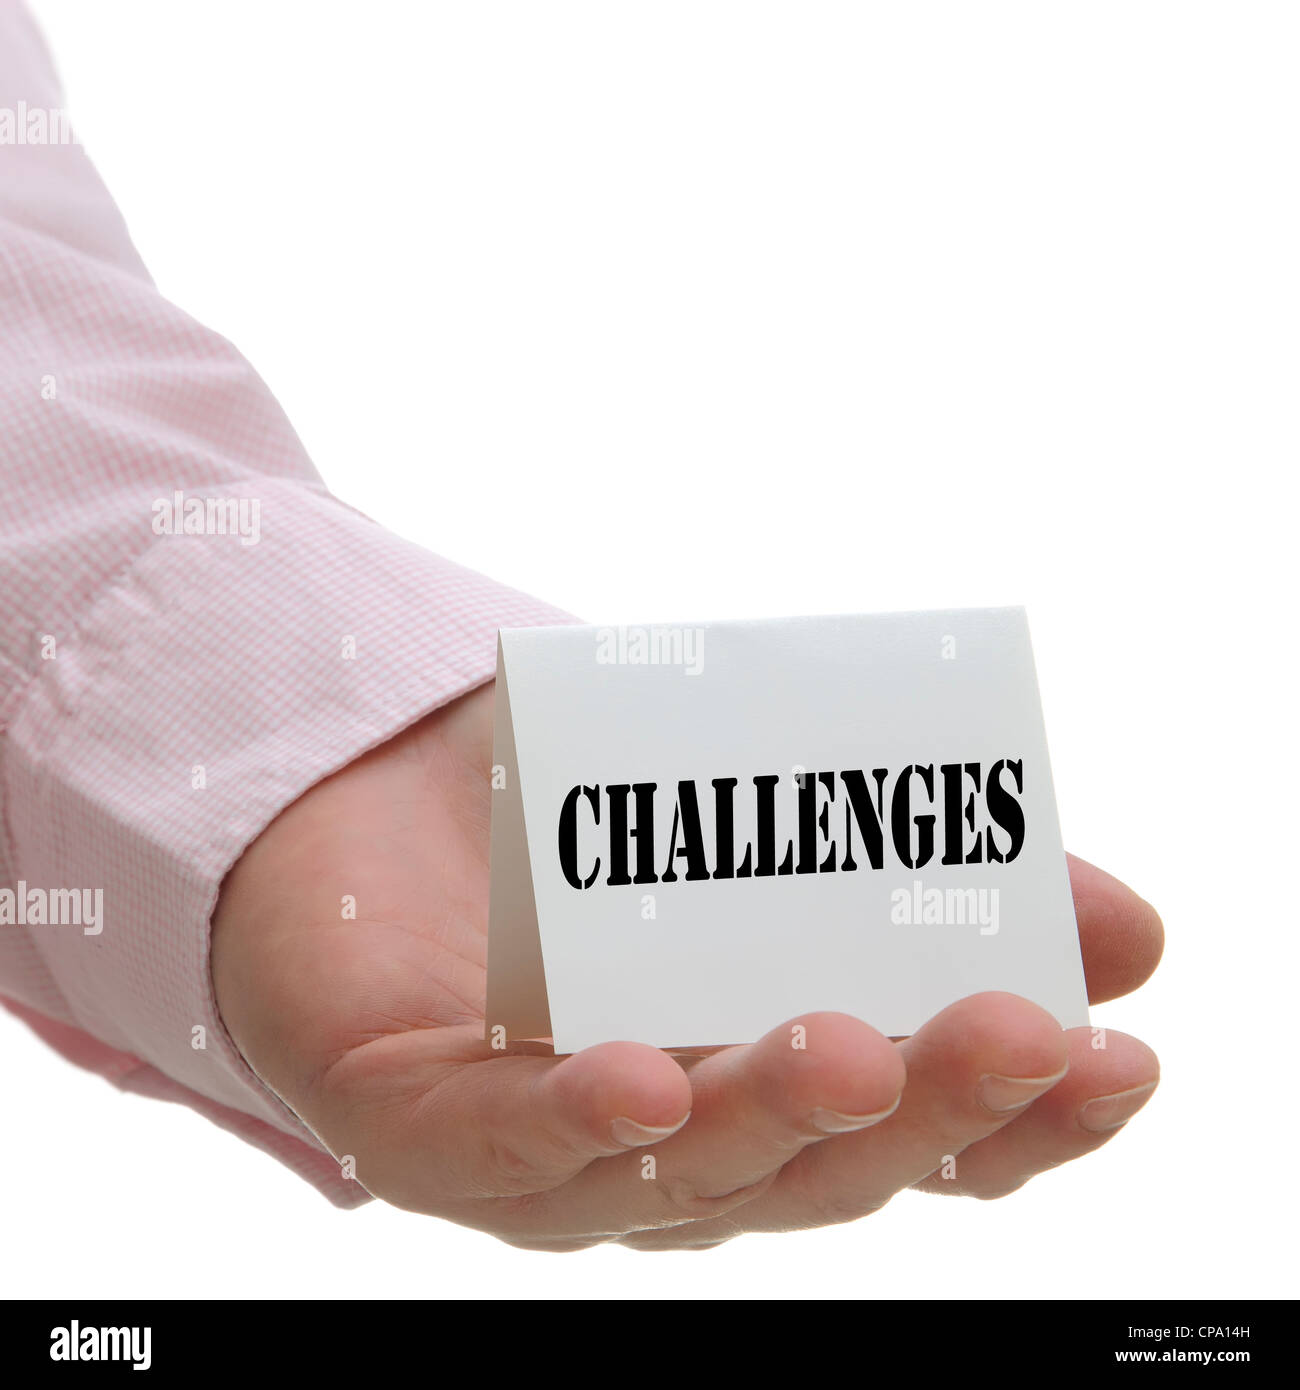 Challenges - Sign Series - Stock Image